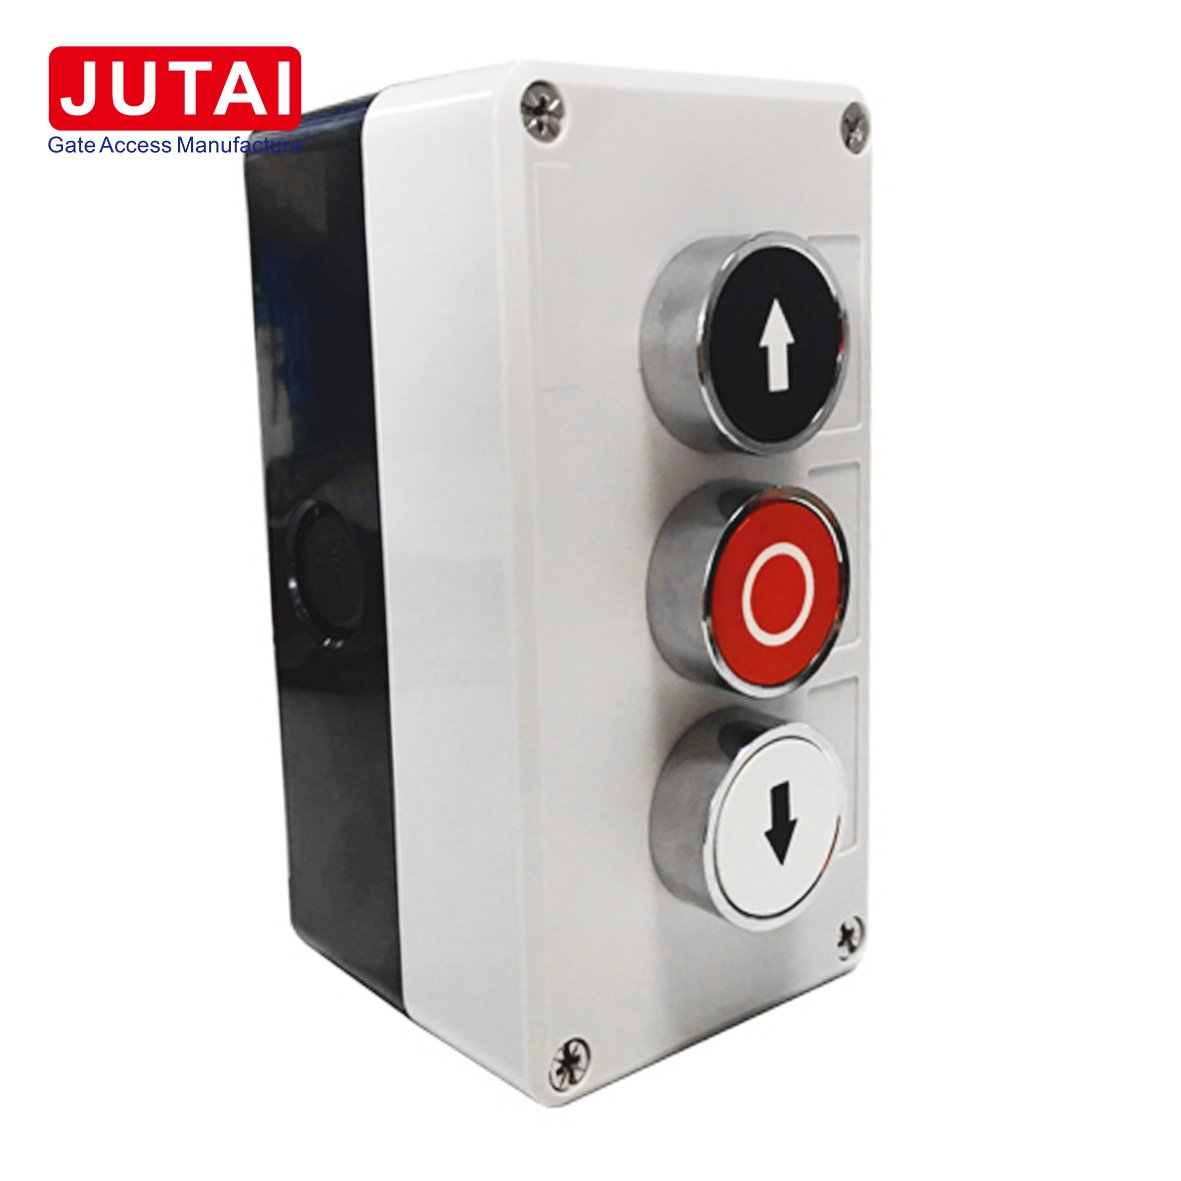 Three Push Button Gate Switch Button Use for Barrier Gate Operator and Autogate System